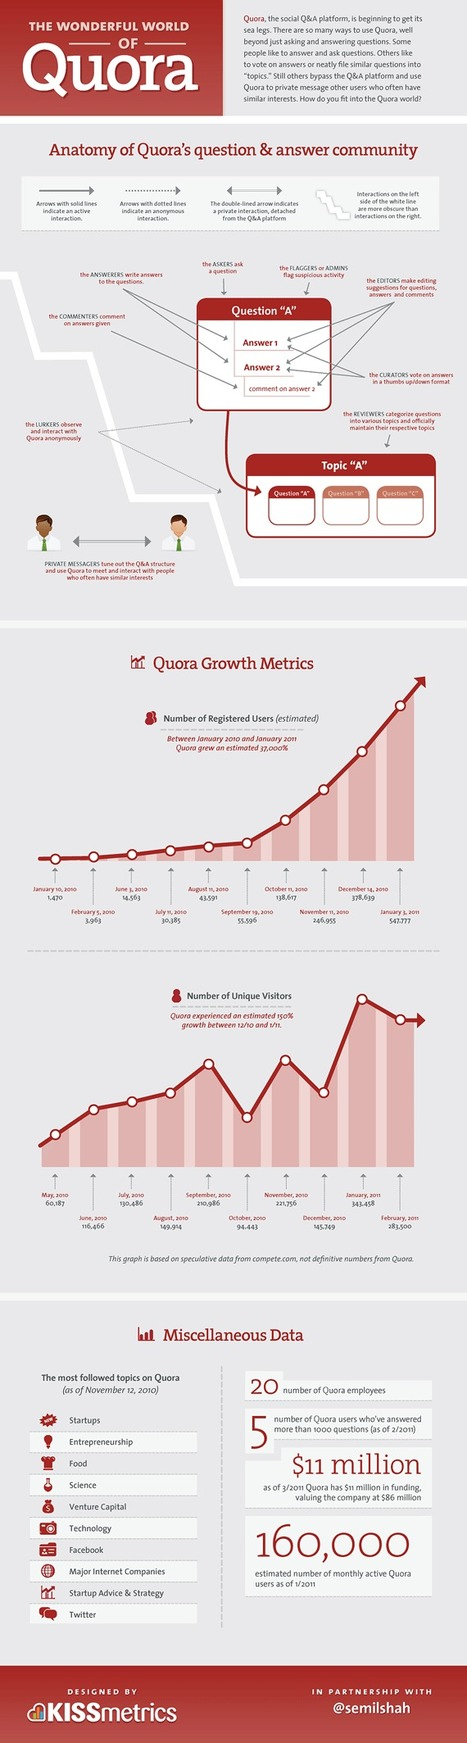 The Wonderful World Of Quora | Digital Transformation of Businesses | Scoop.it